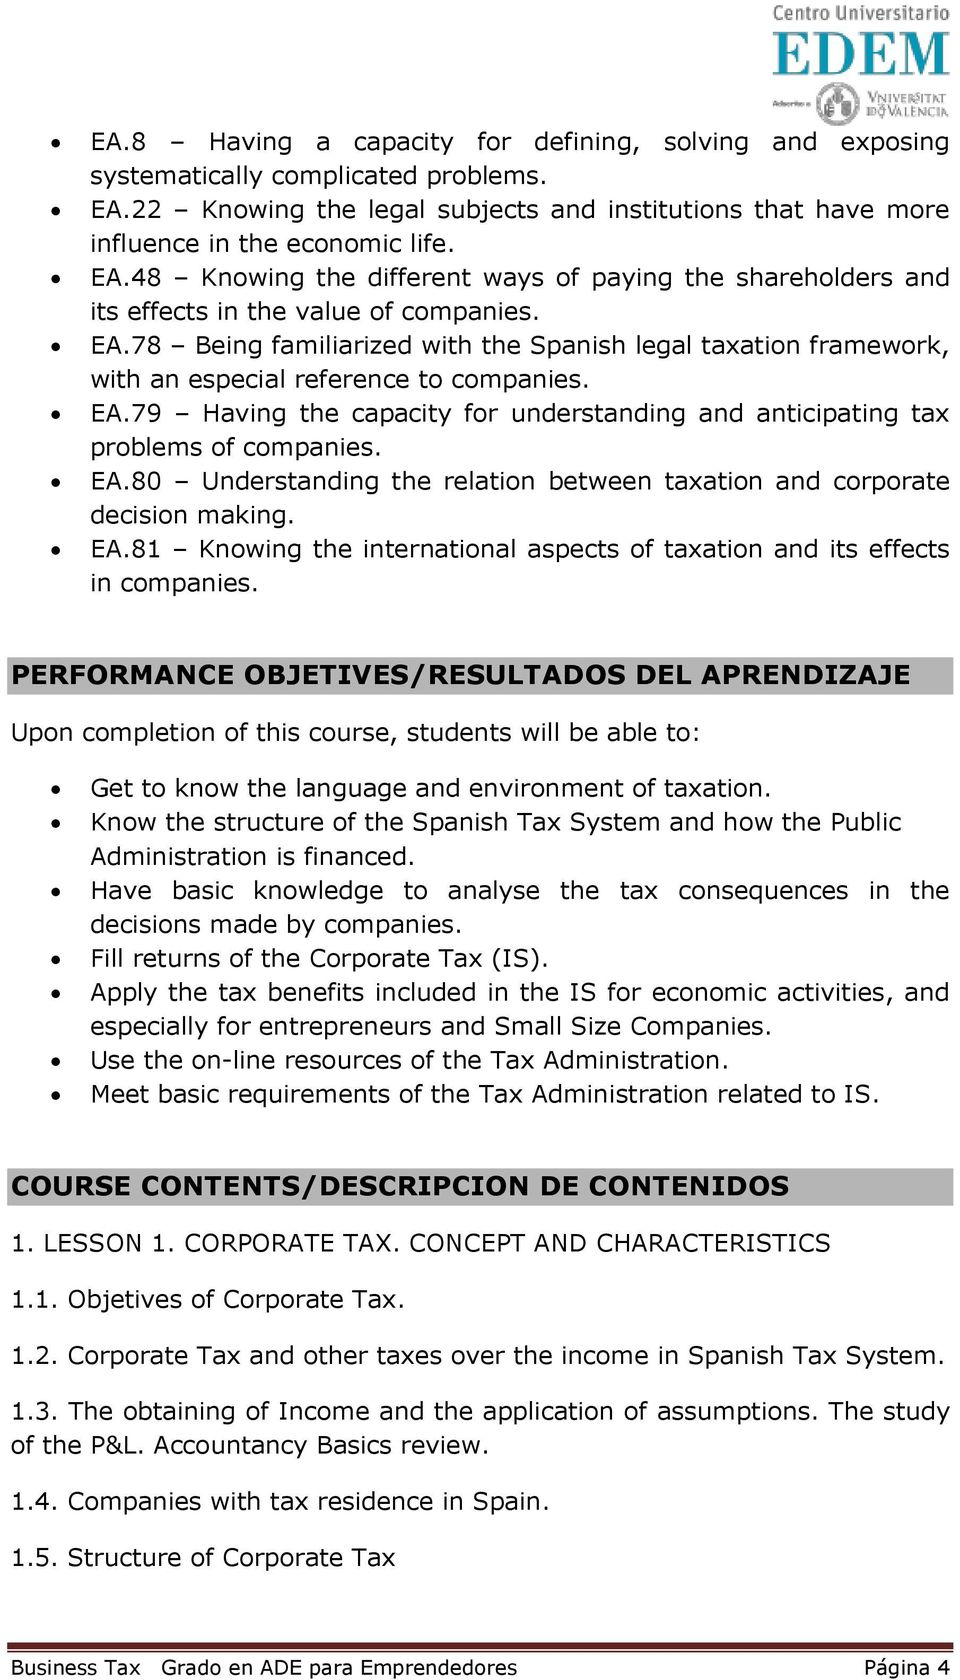 EA.81 Knowing the international aspects of taxation and its effects in companies.